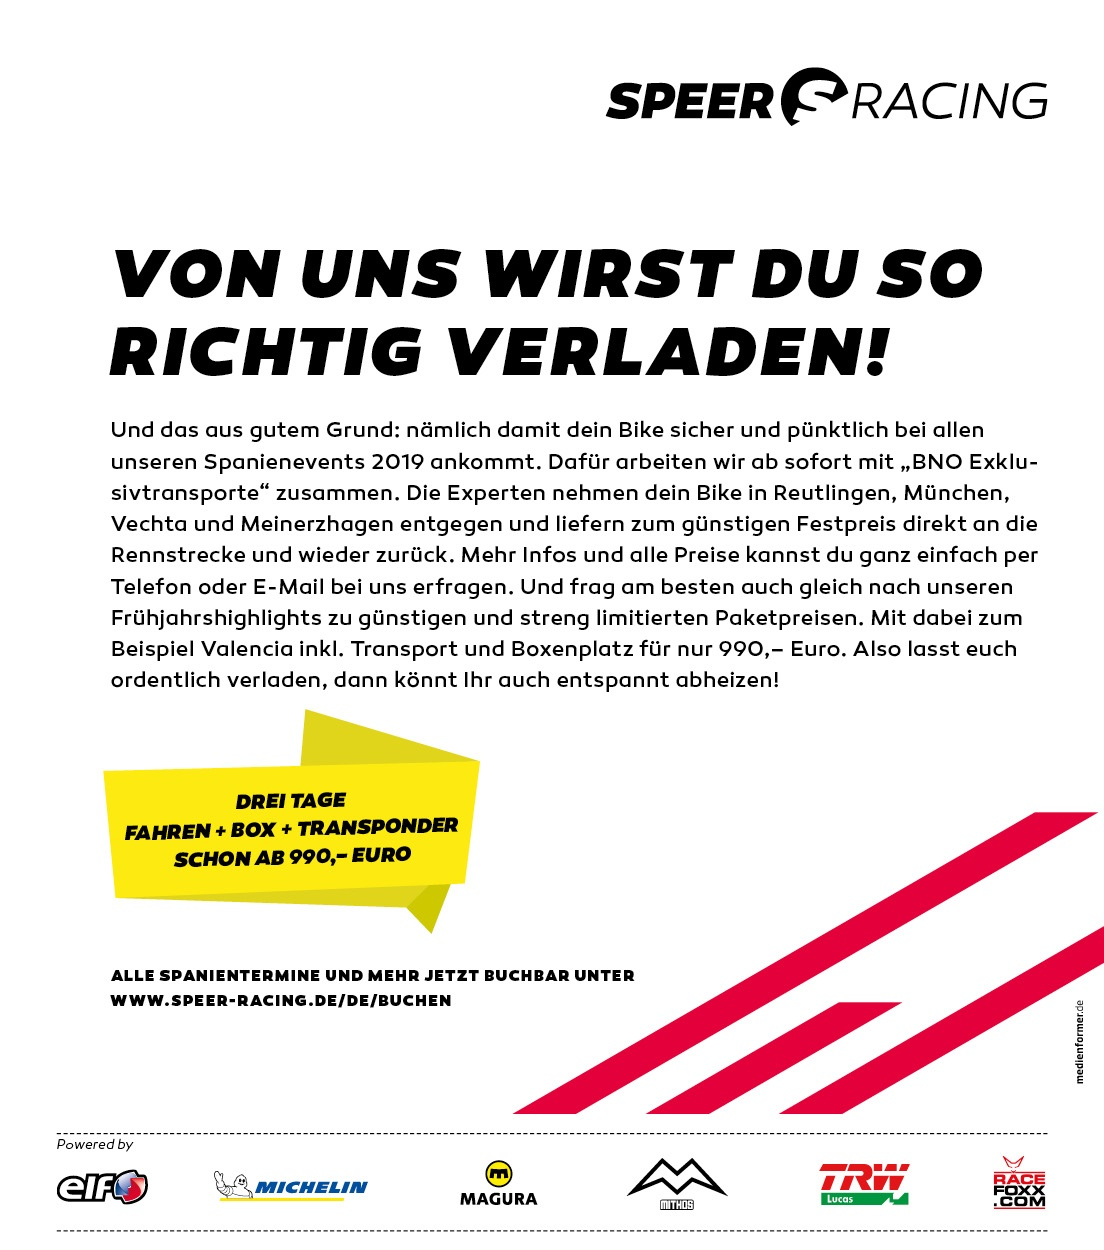 Speer-Racing - Verladen